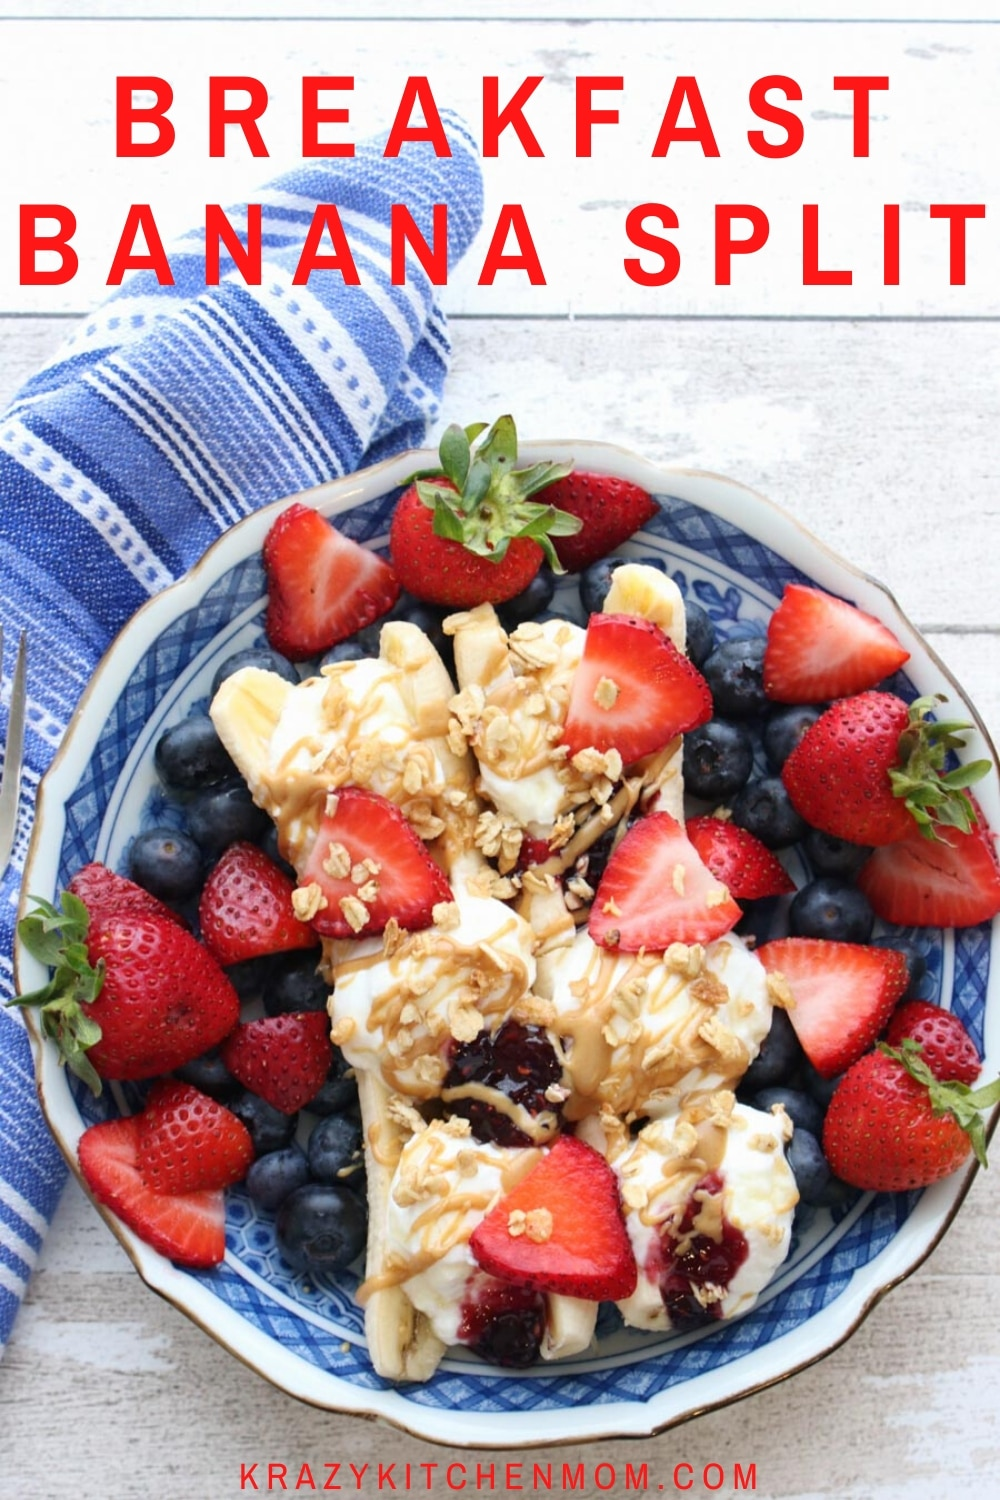 Banana Split Breakfast filled with Greek yogurt, topped with fruit and granola and drizzled with peanut butter, jam and honey.  via @krazykitchenmom